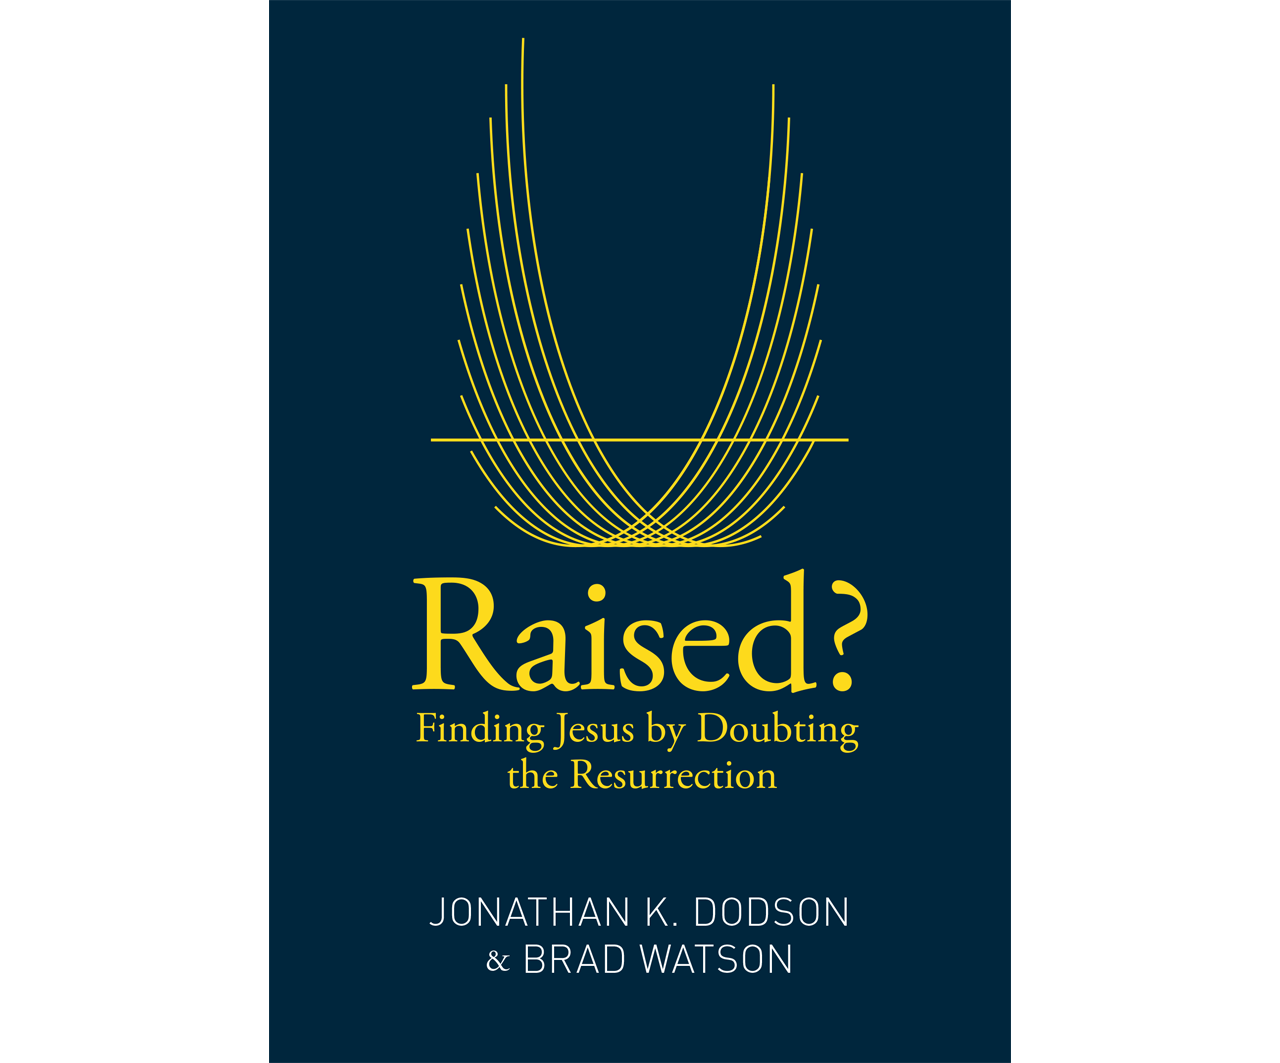 Raised? Finding Jesus by Doubting the Resurrection.